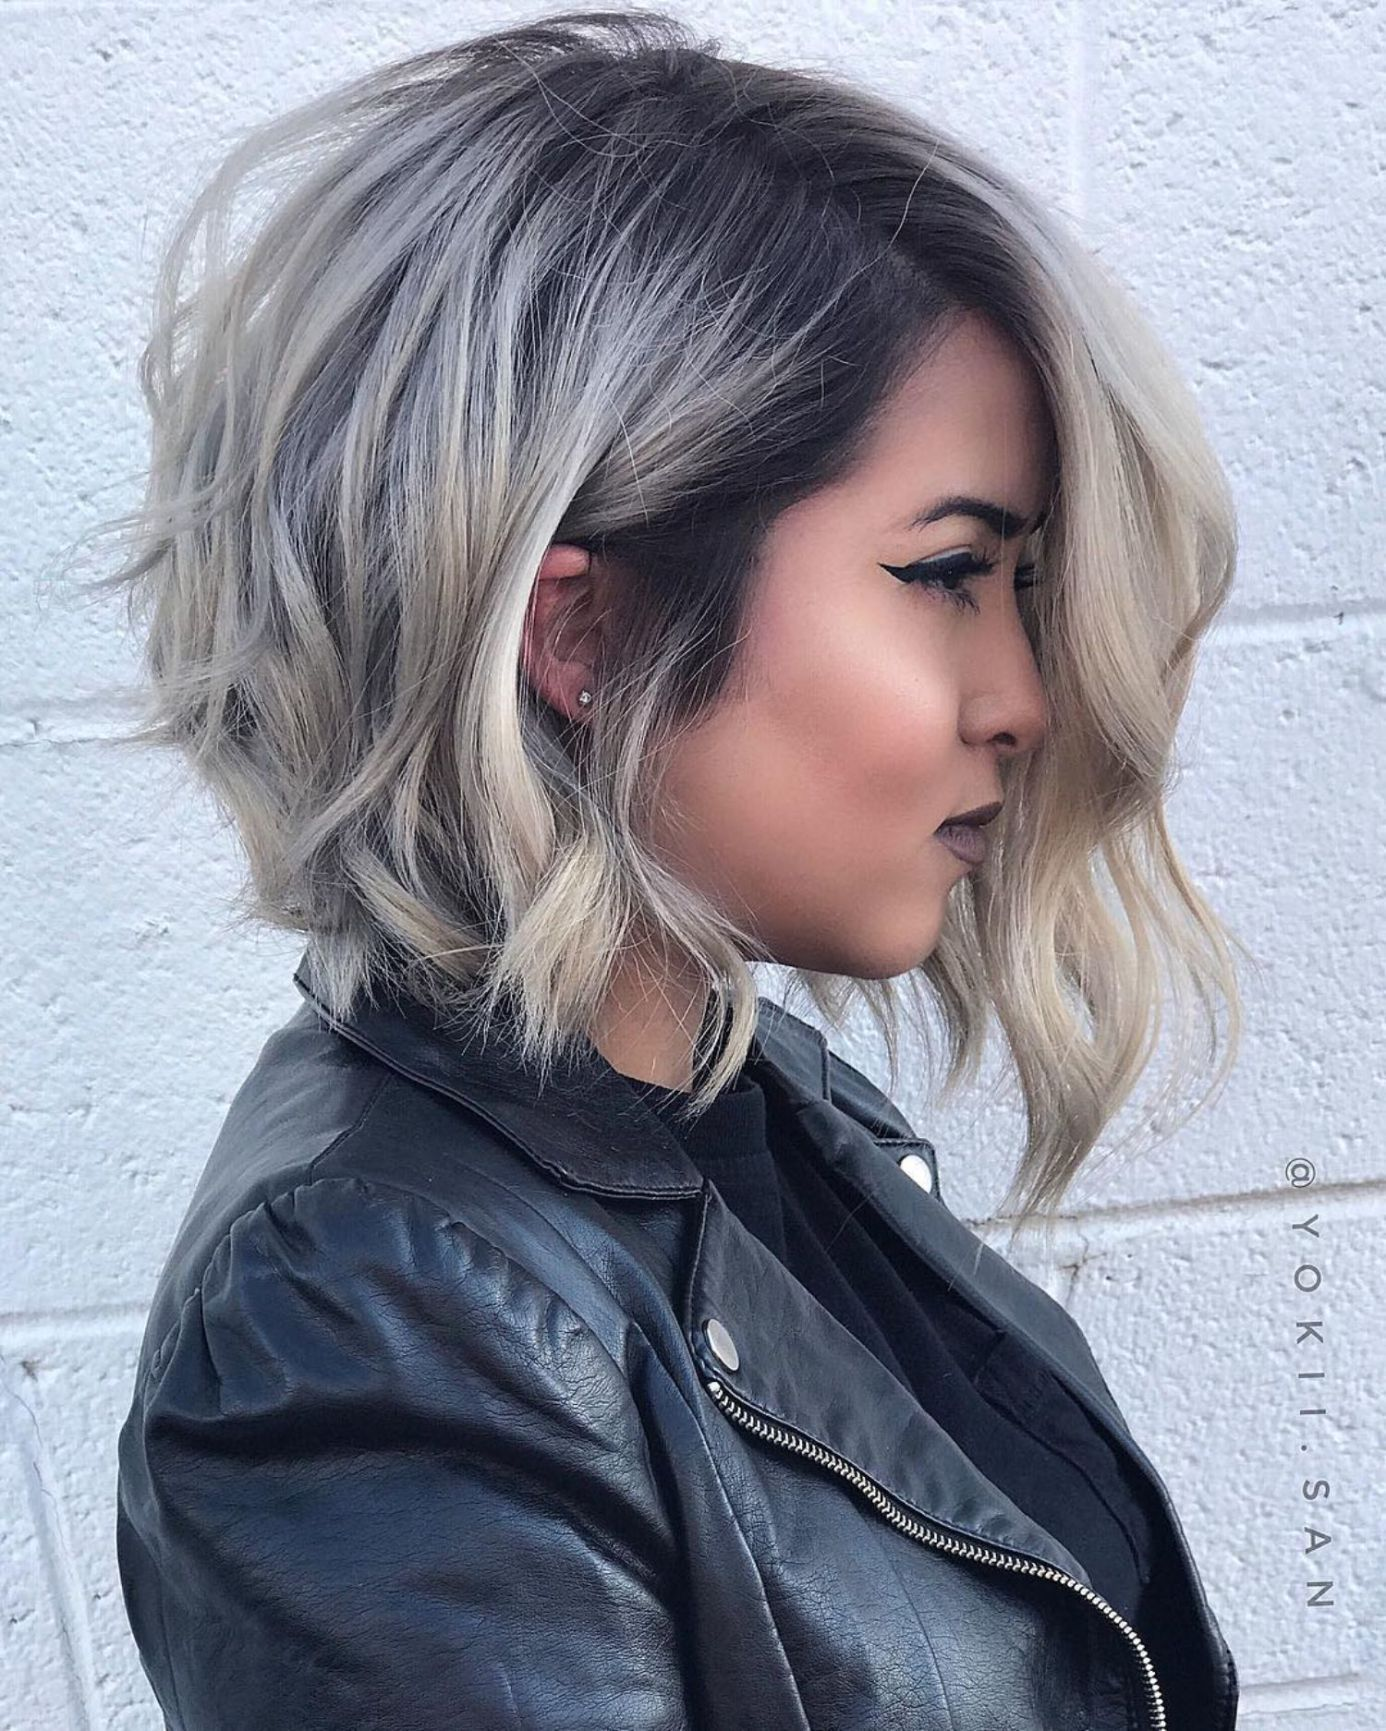 60 Fun And Flattering Medium Hairstyles For Women Short Hair Styles For Round Faces Hair Styles Medium Hair Styles